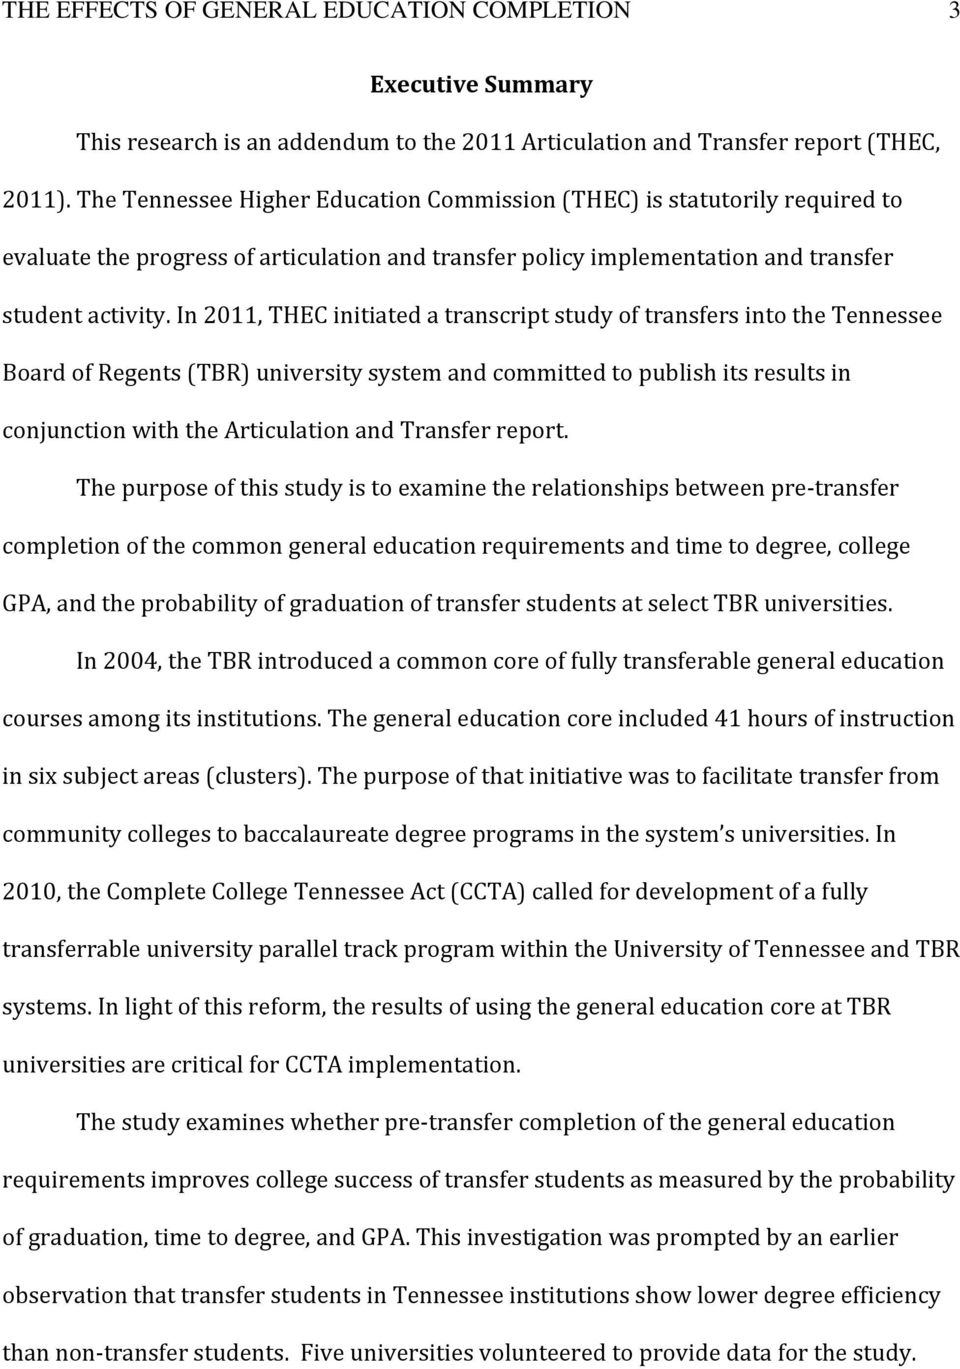 In 2011, THEC initiated a transcript study of transfers into the Tennessee Board of Regents (TBR) university system and committed to publish its results in conjunction with the Articulation and